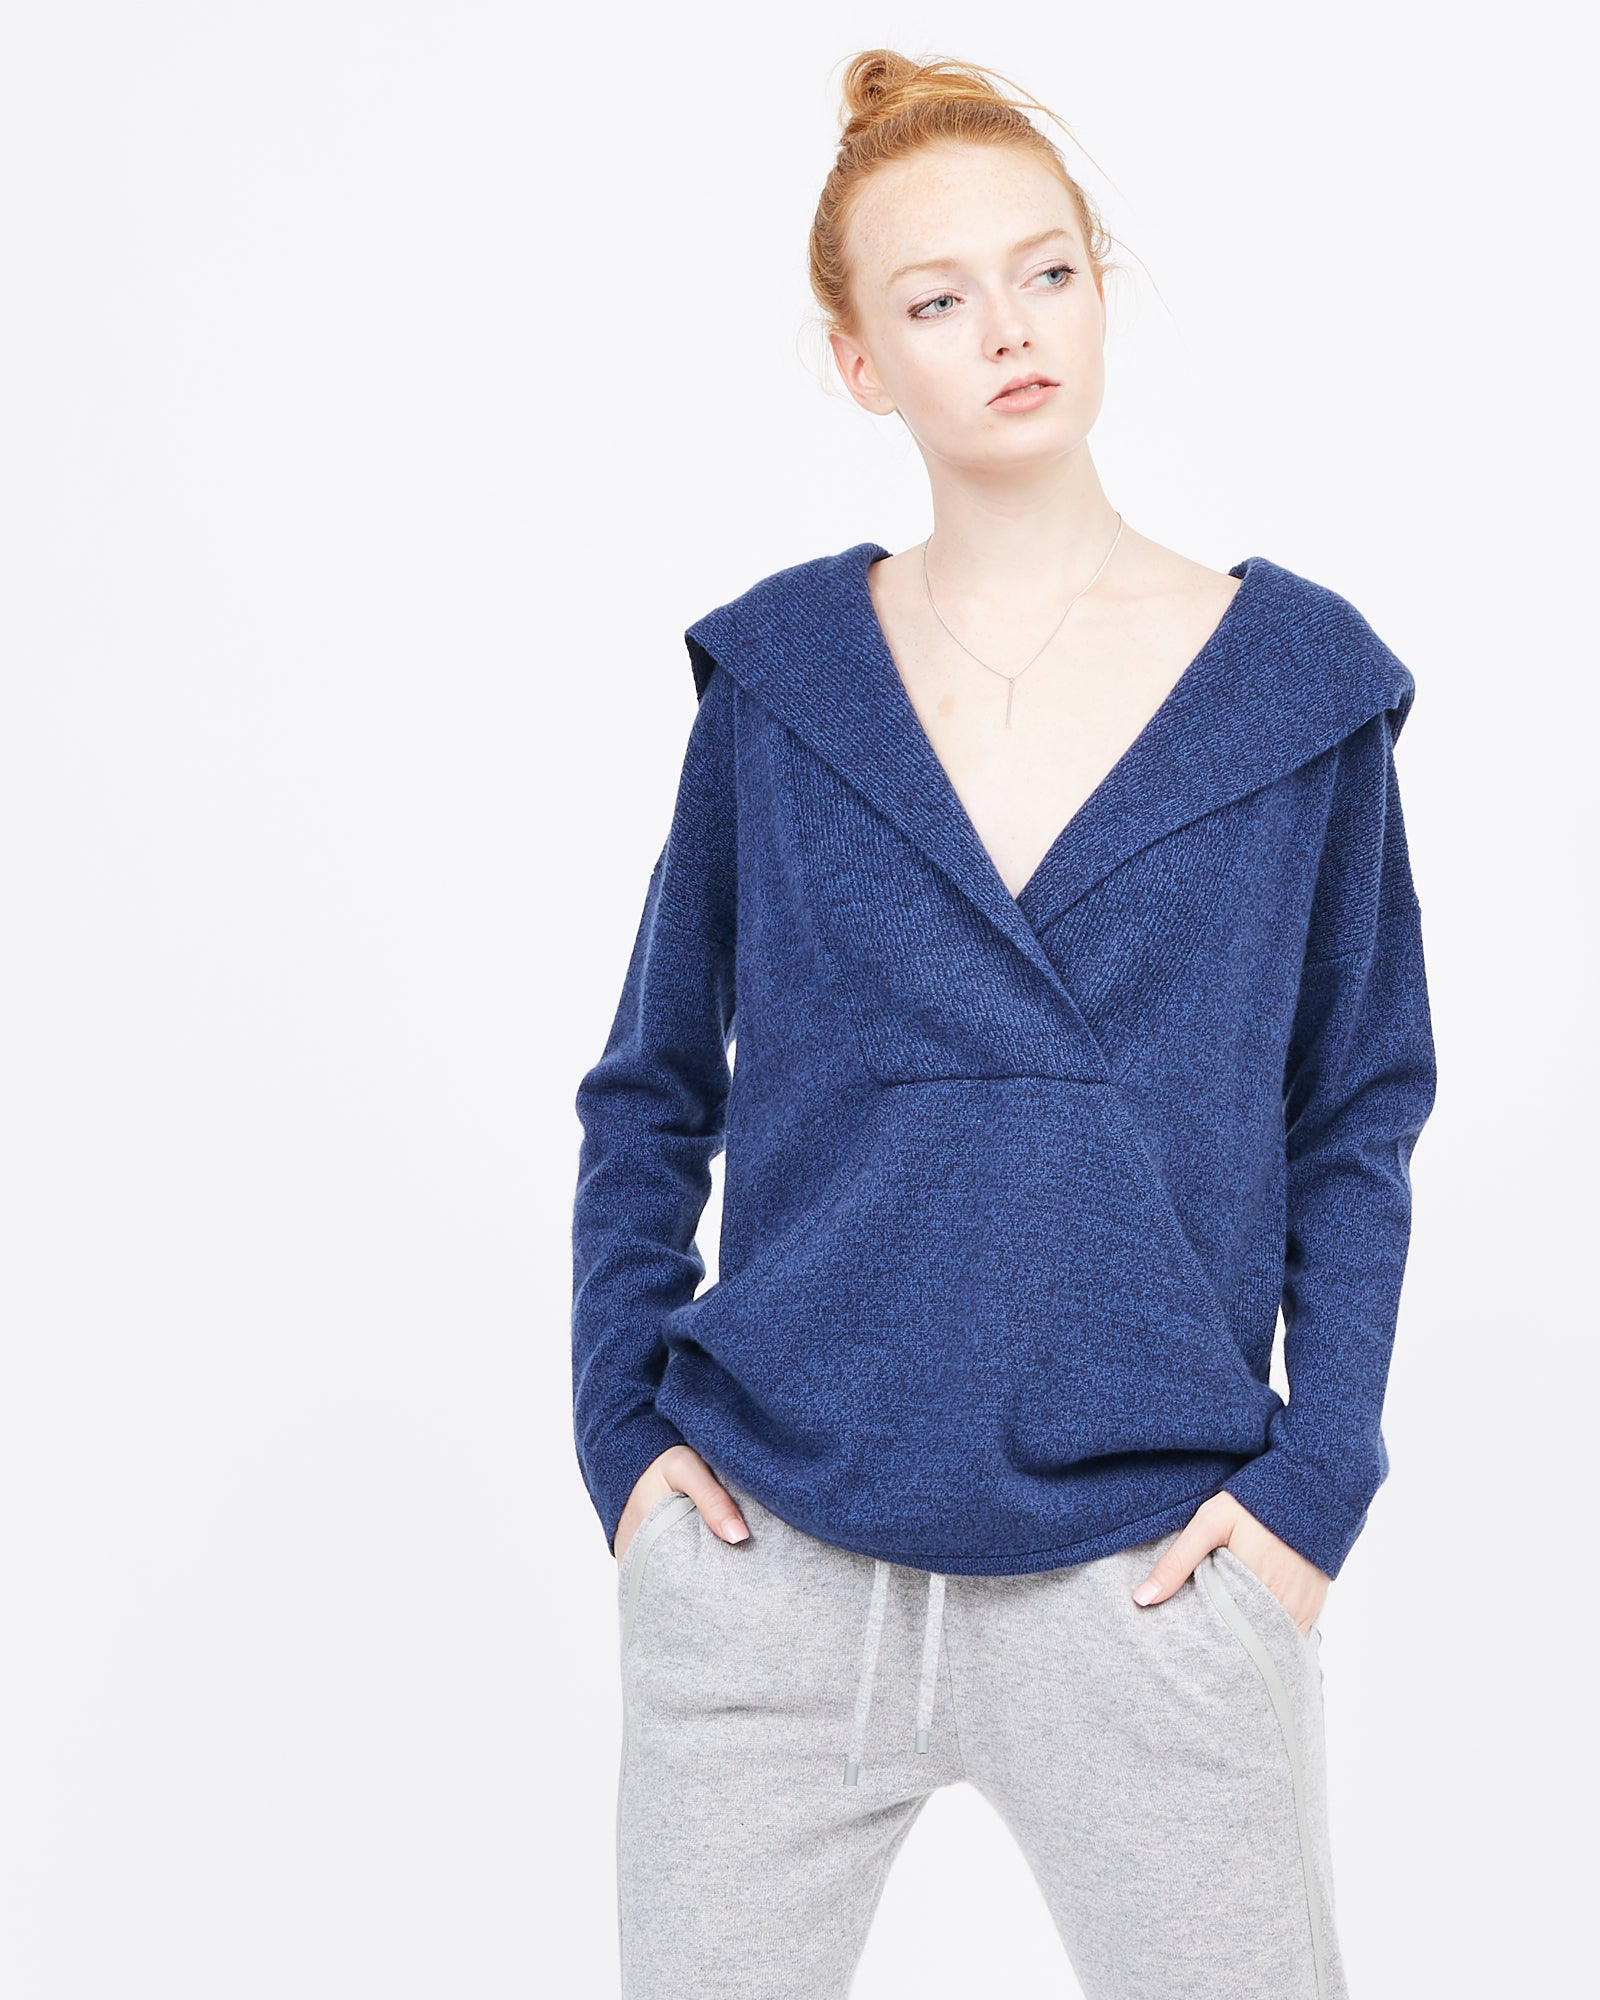 Athleisure Hoodie with pockets